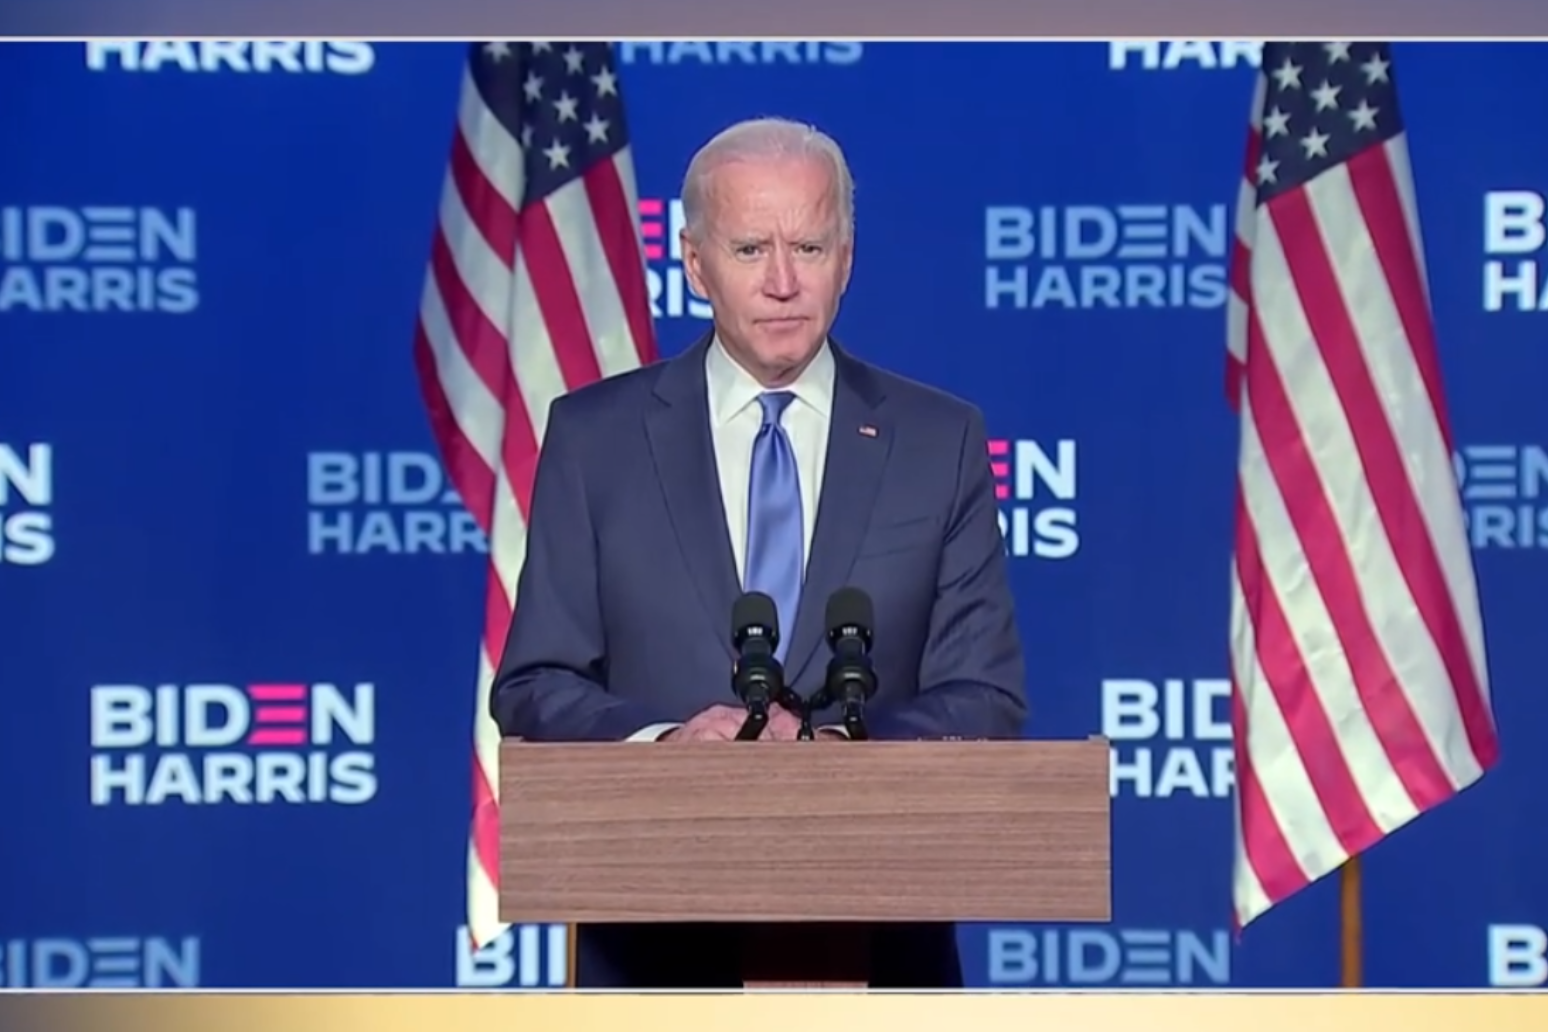 Joe Biden says 'we're going to win this race' but does not declare victory